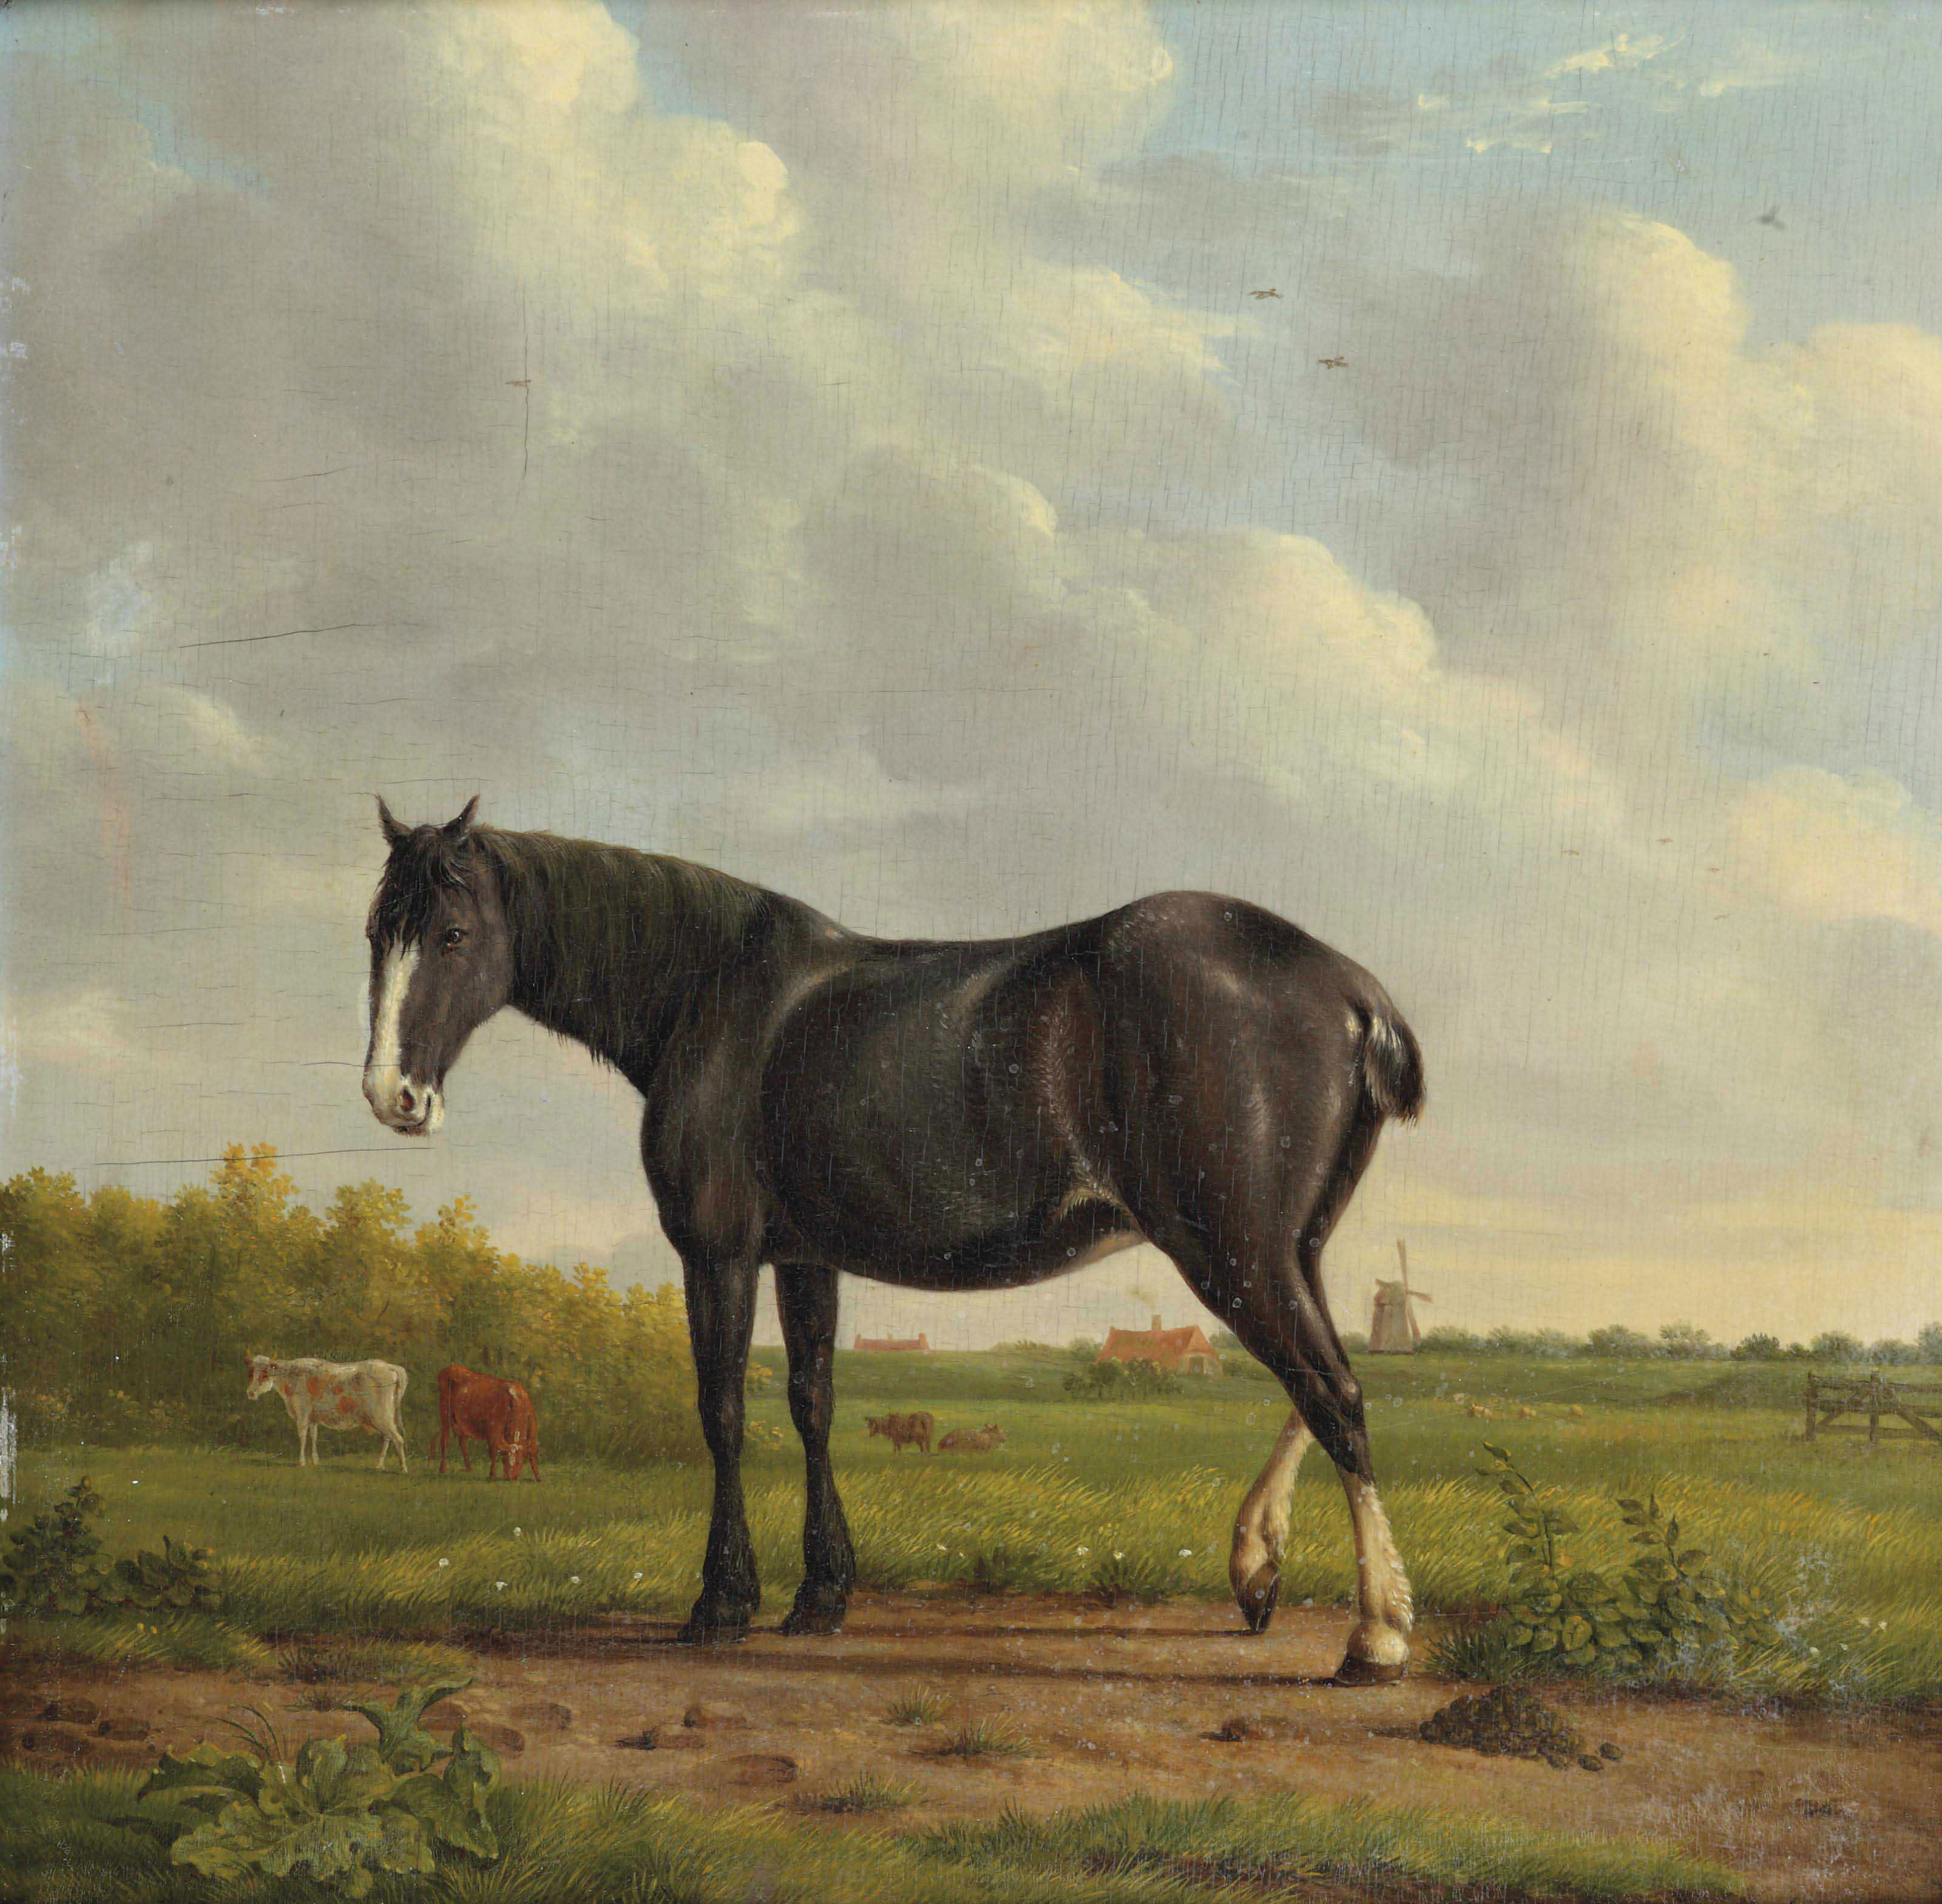 A black horse in a polder landscape